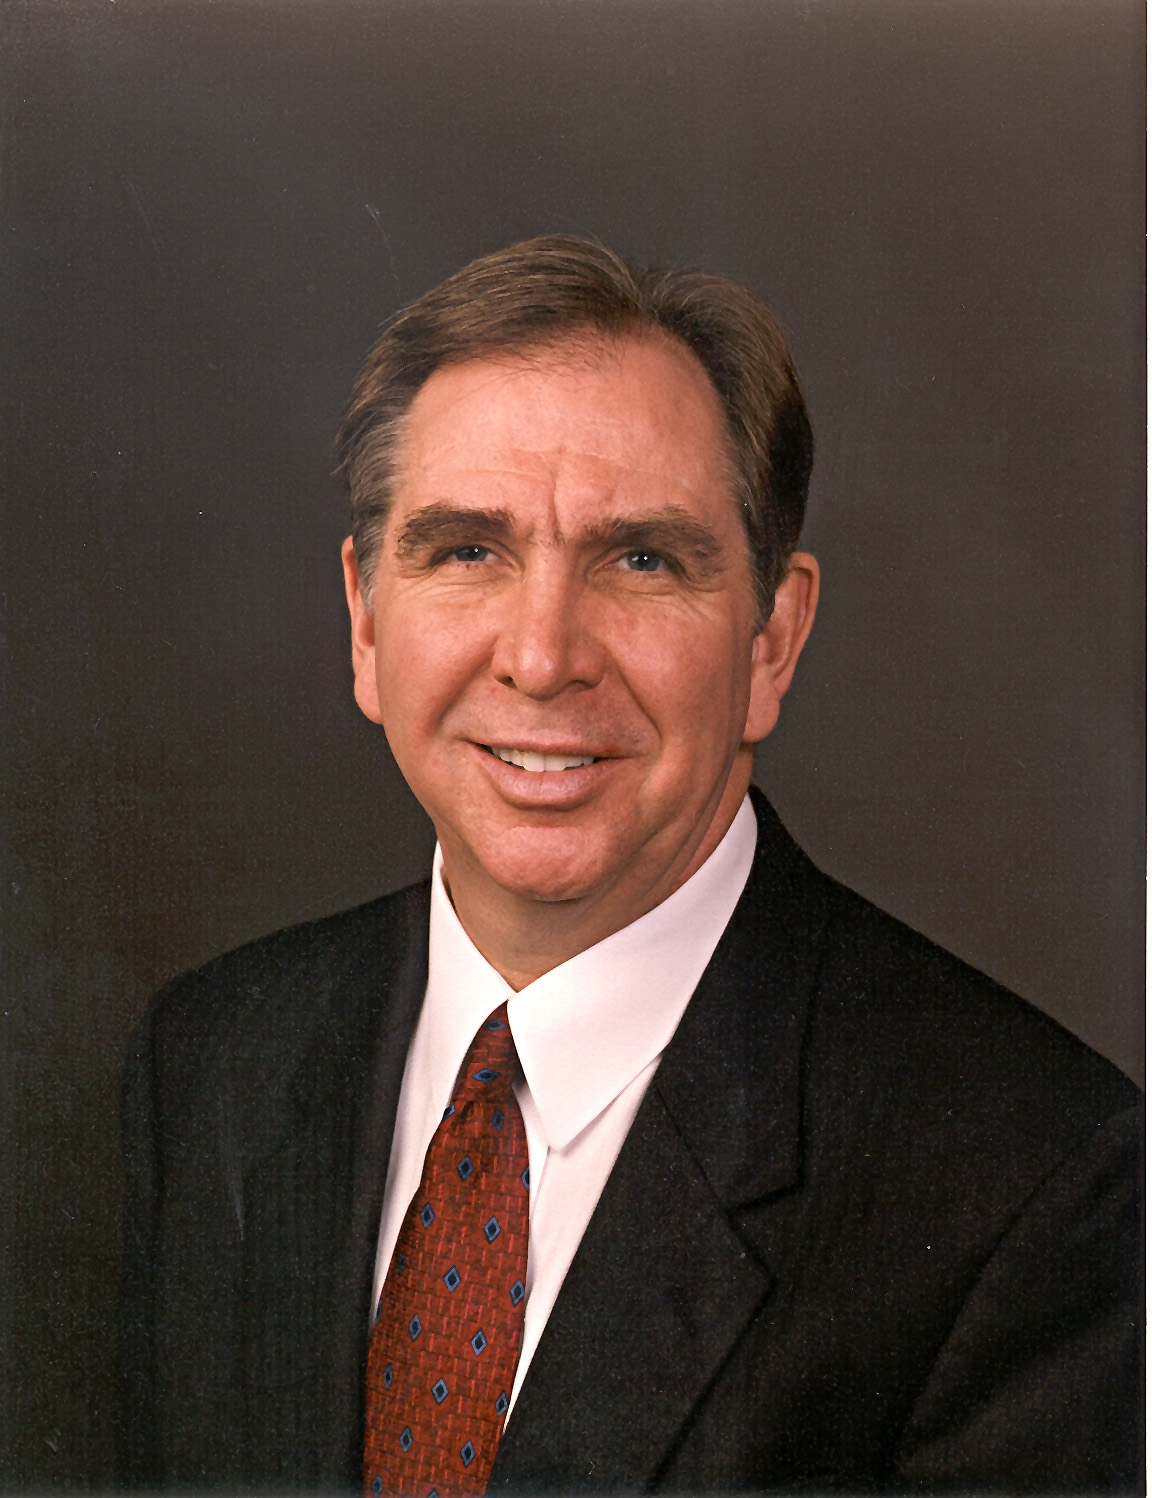 Michael K. Young